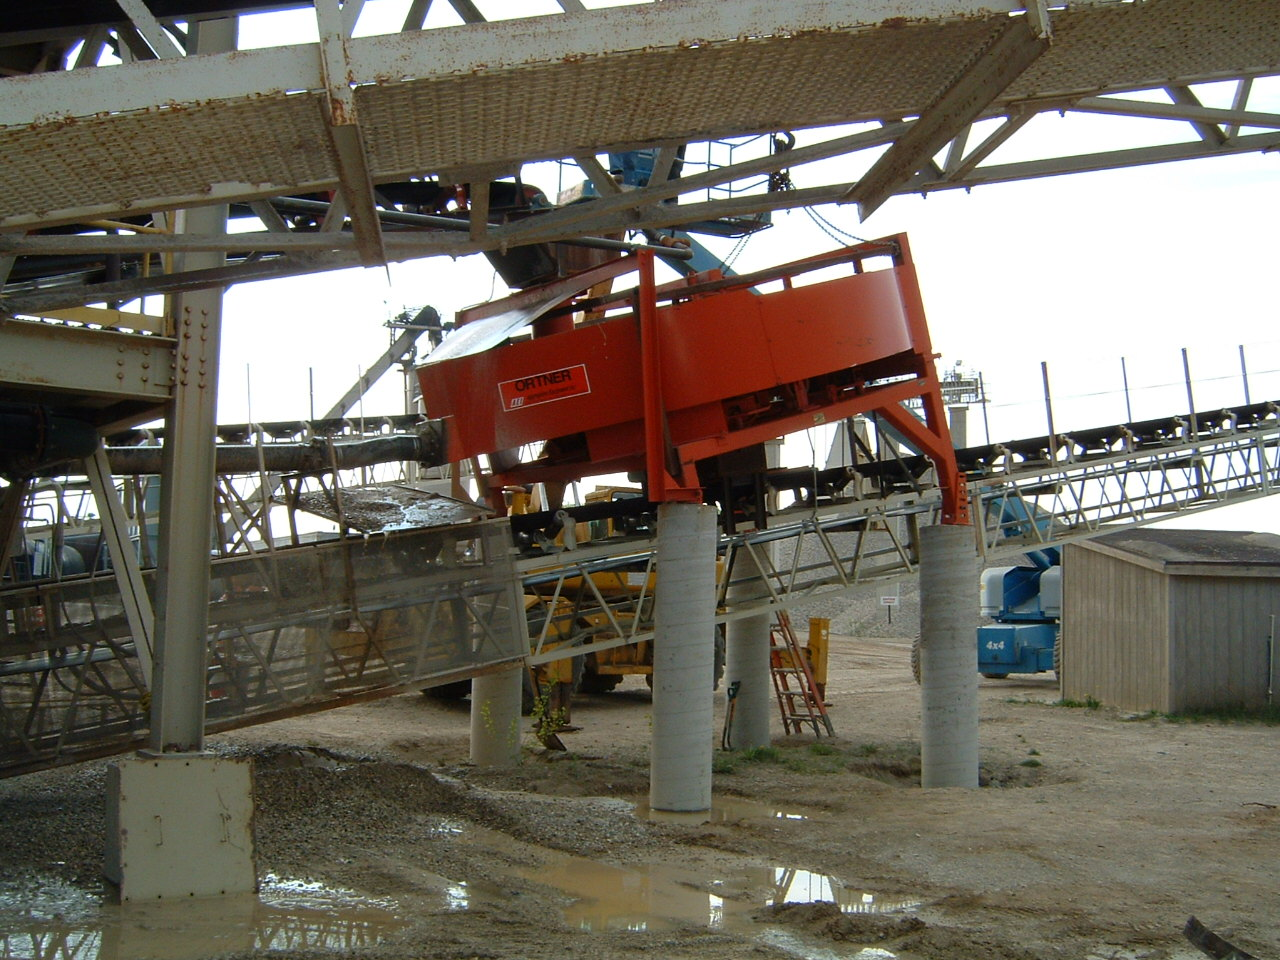 A side view of an Ortner sand classifier in use at a manufactured sand plant.